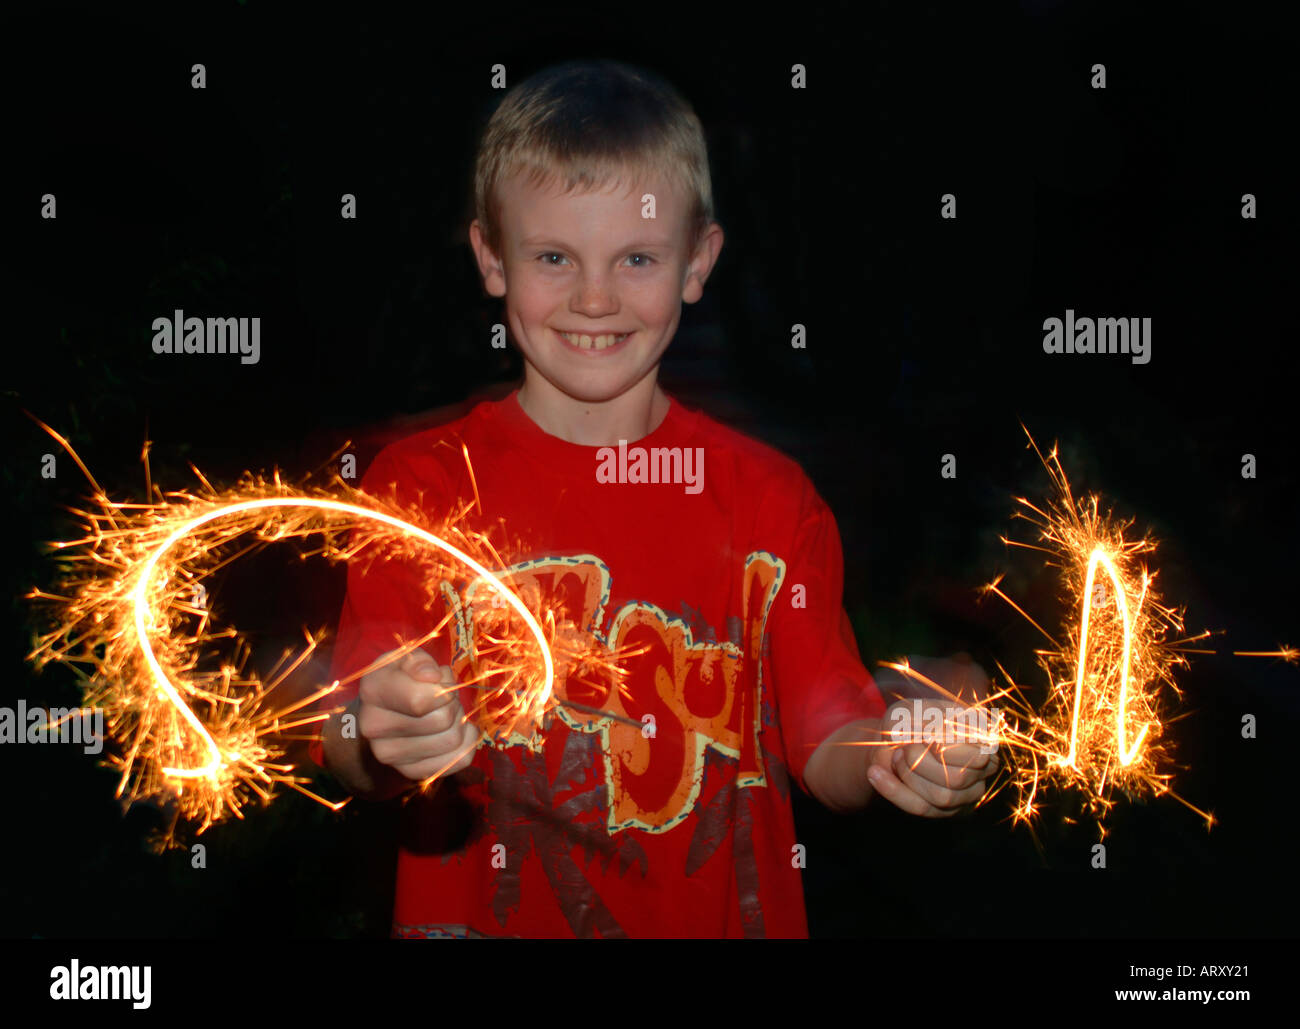 Boy Using A Firework Sparklers To Paint With Light. - Stock Image